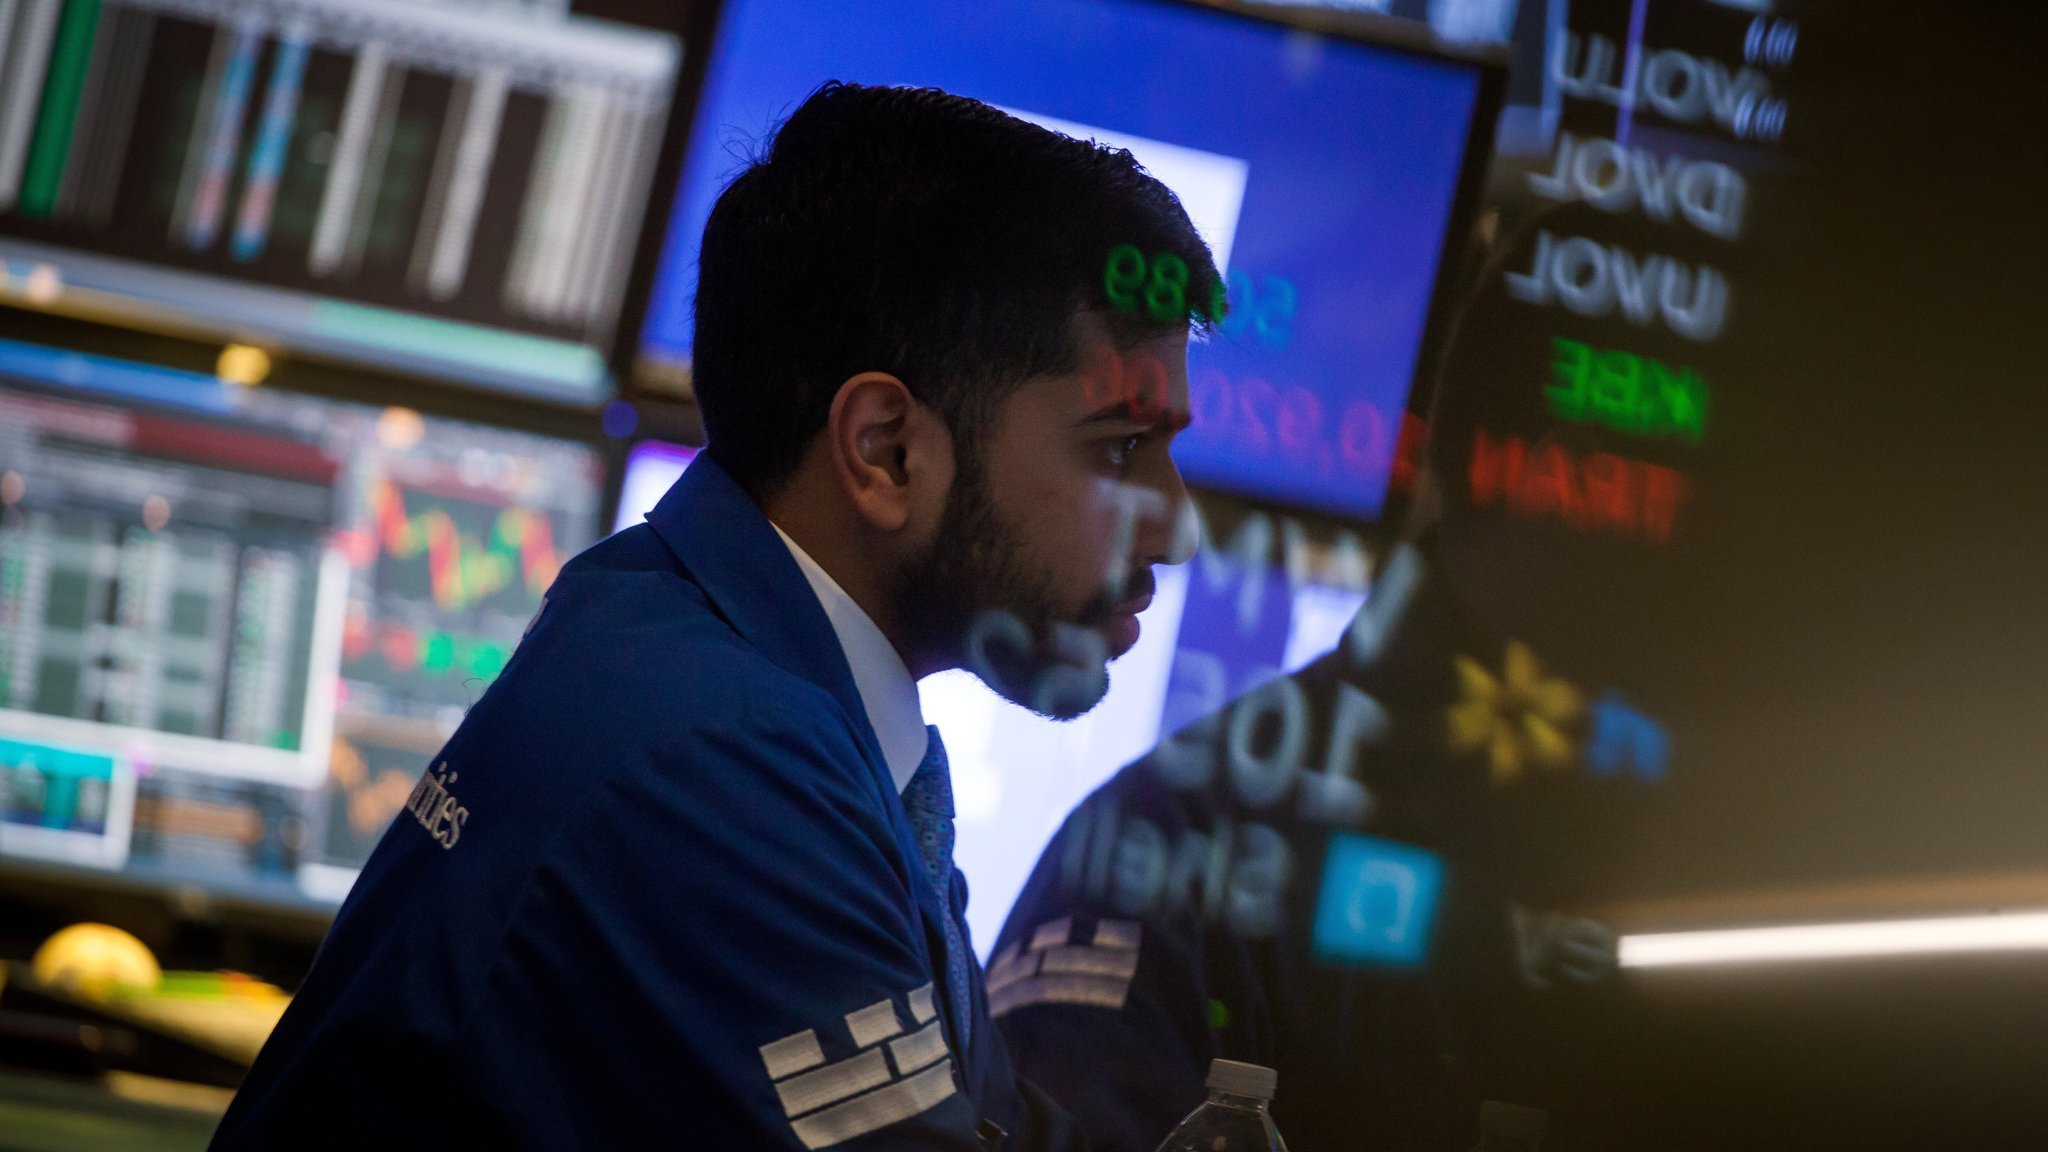 Asia markets sell off after Wall Street stumble